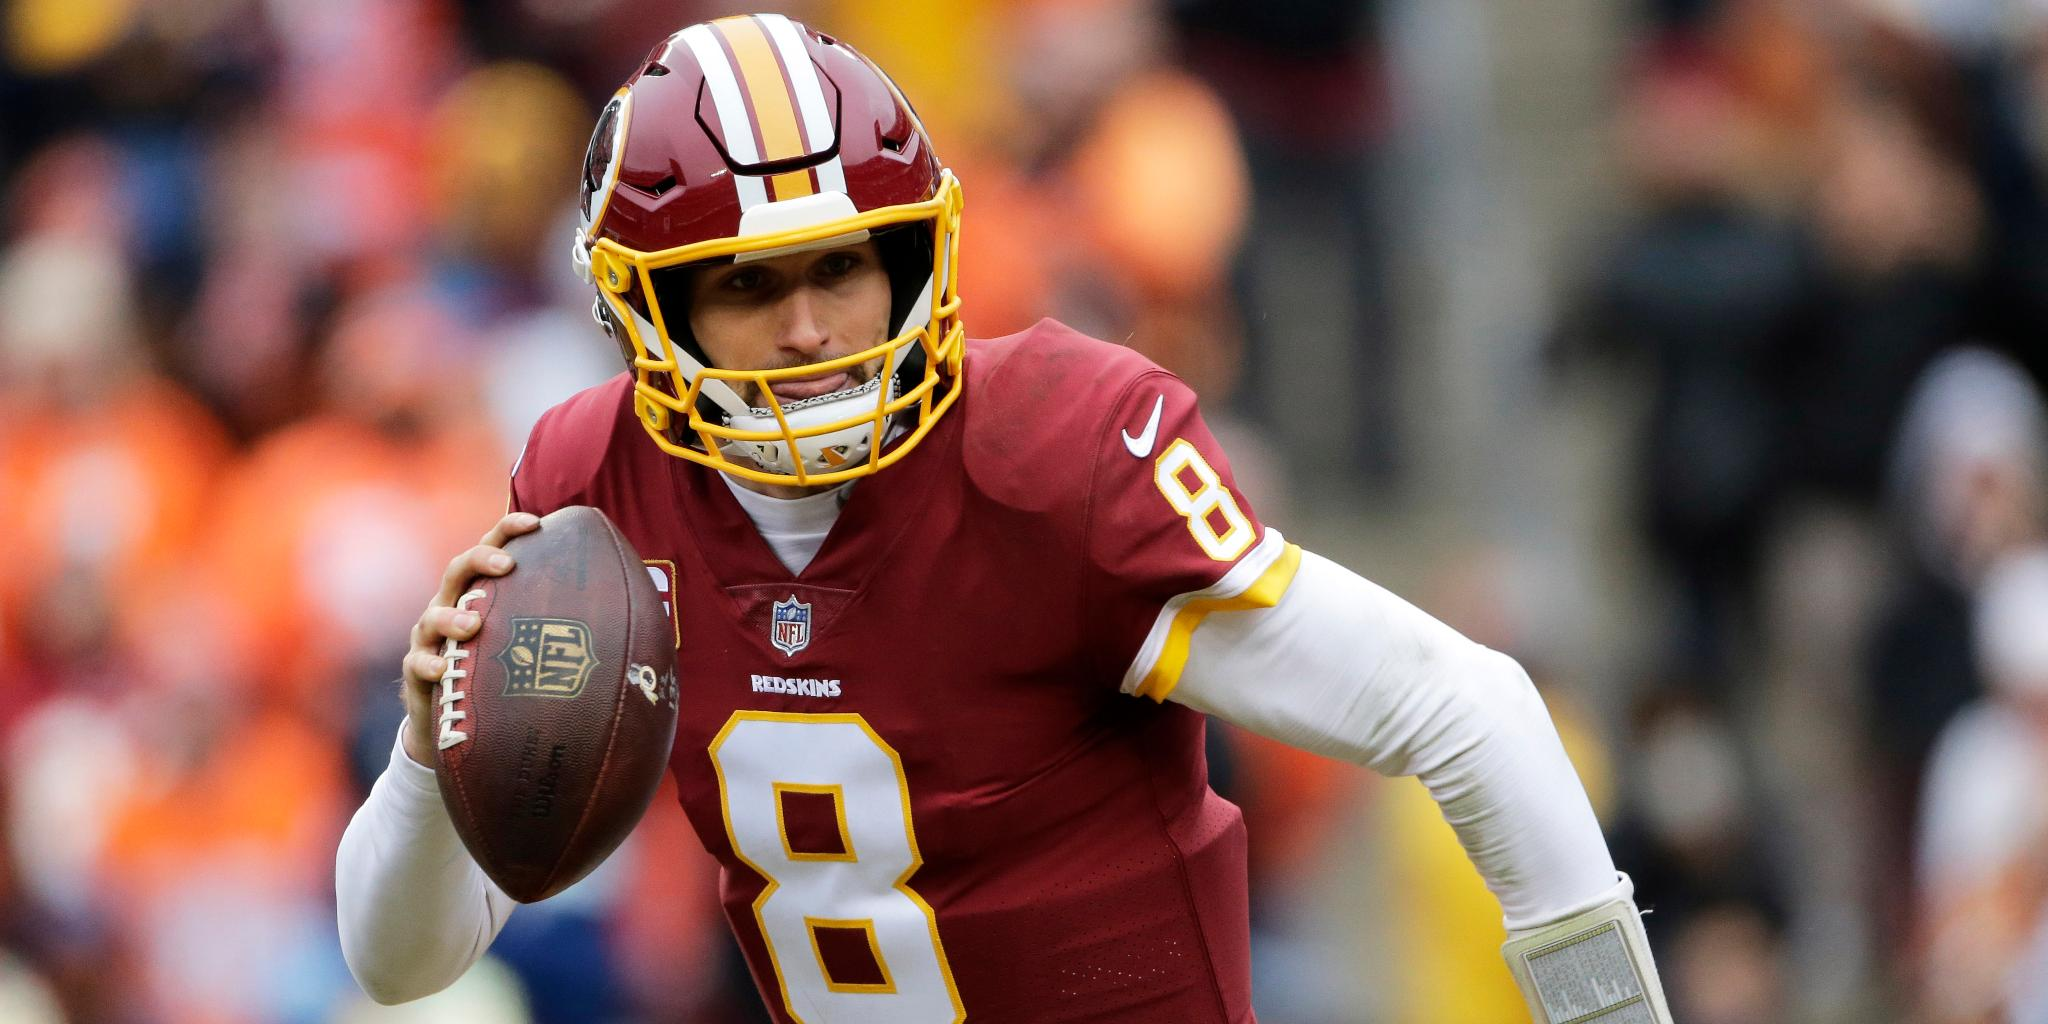 Broncos reportedly never made offer for Kirk Cousins: https://t.co/gCWEgrIUWC https://t.co/07mrNFhmvo